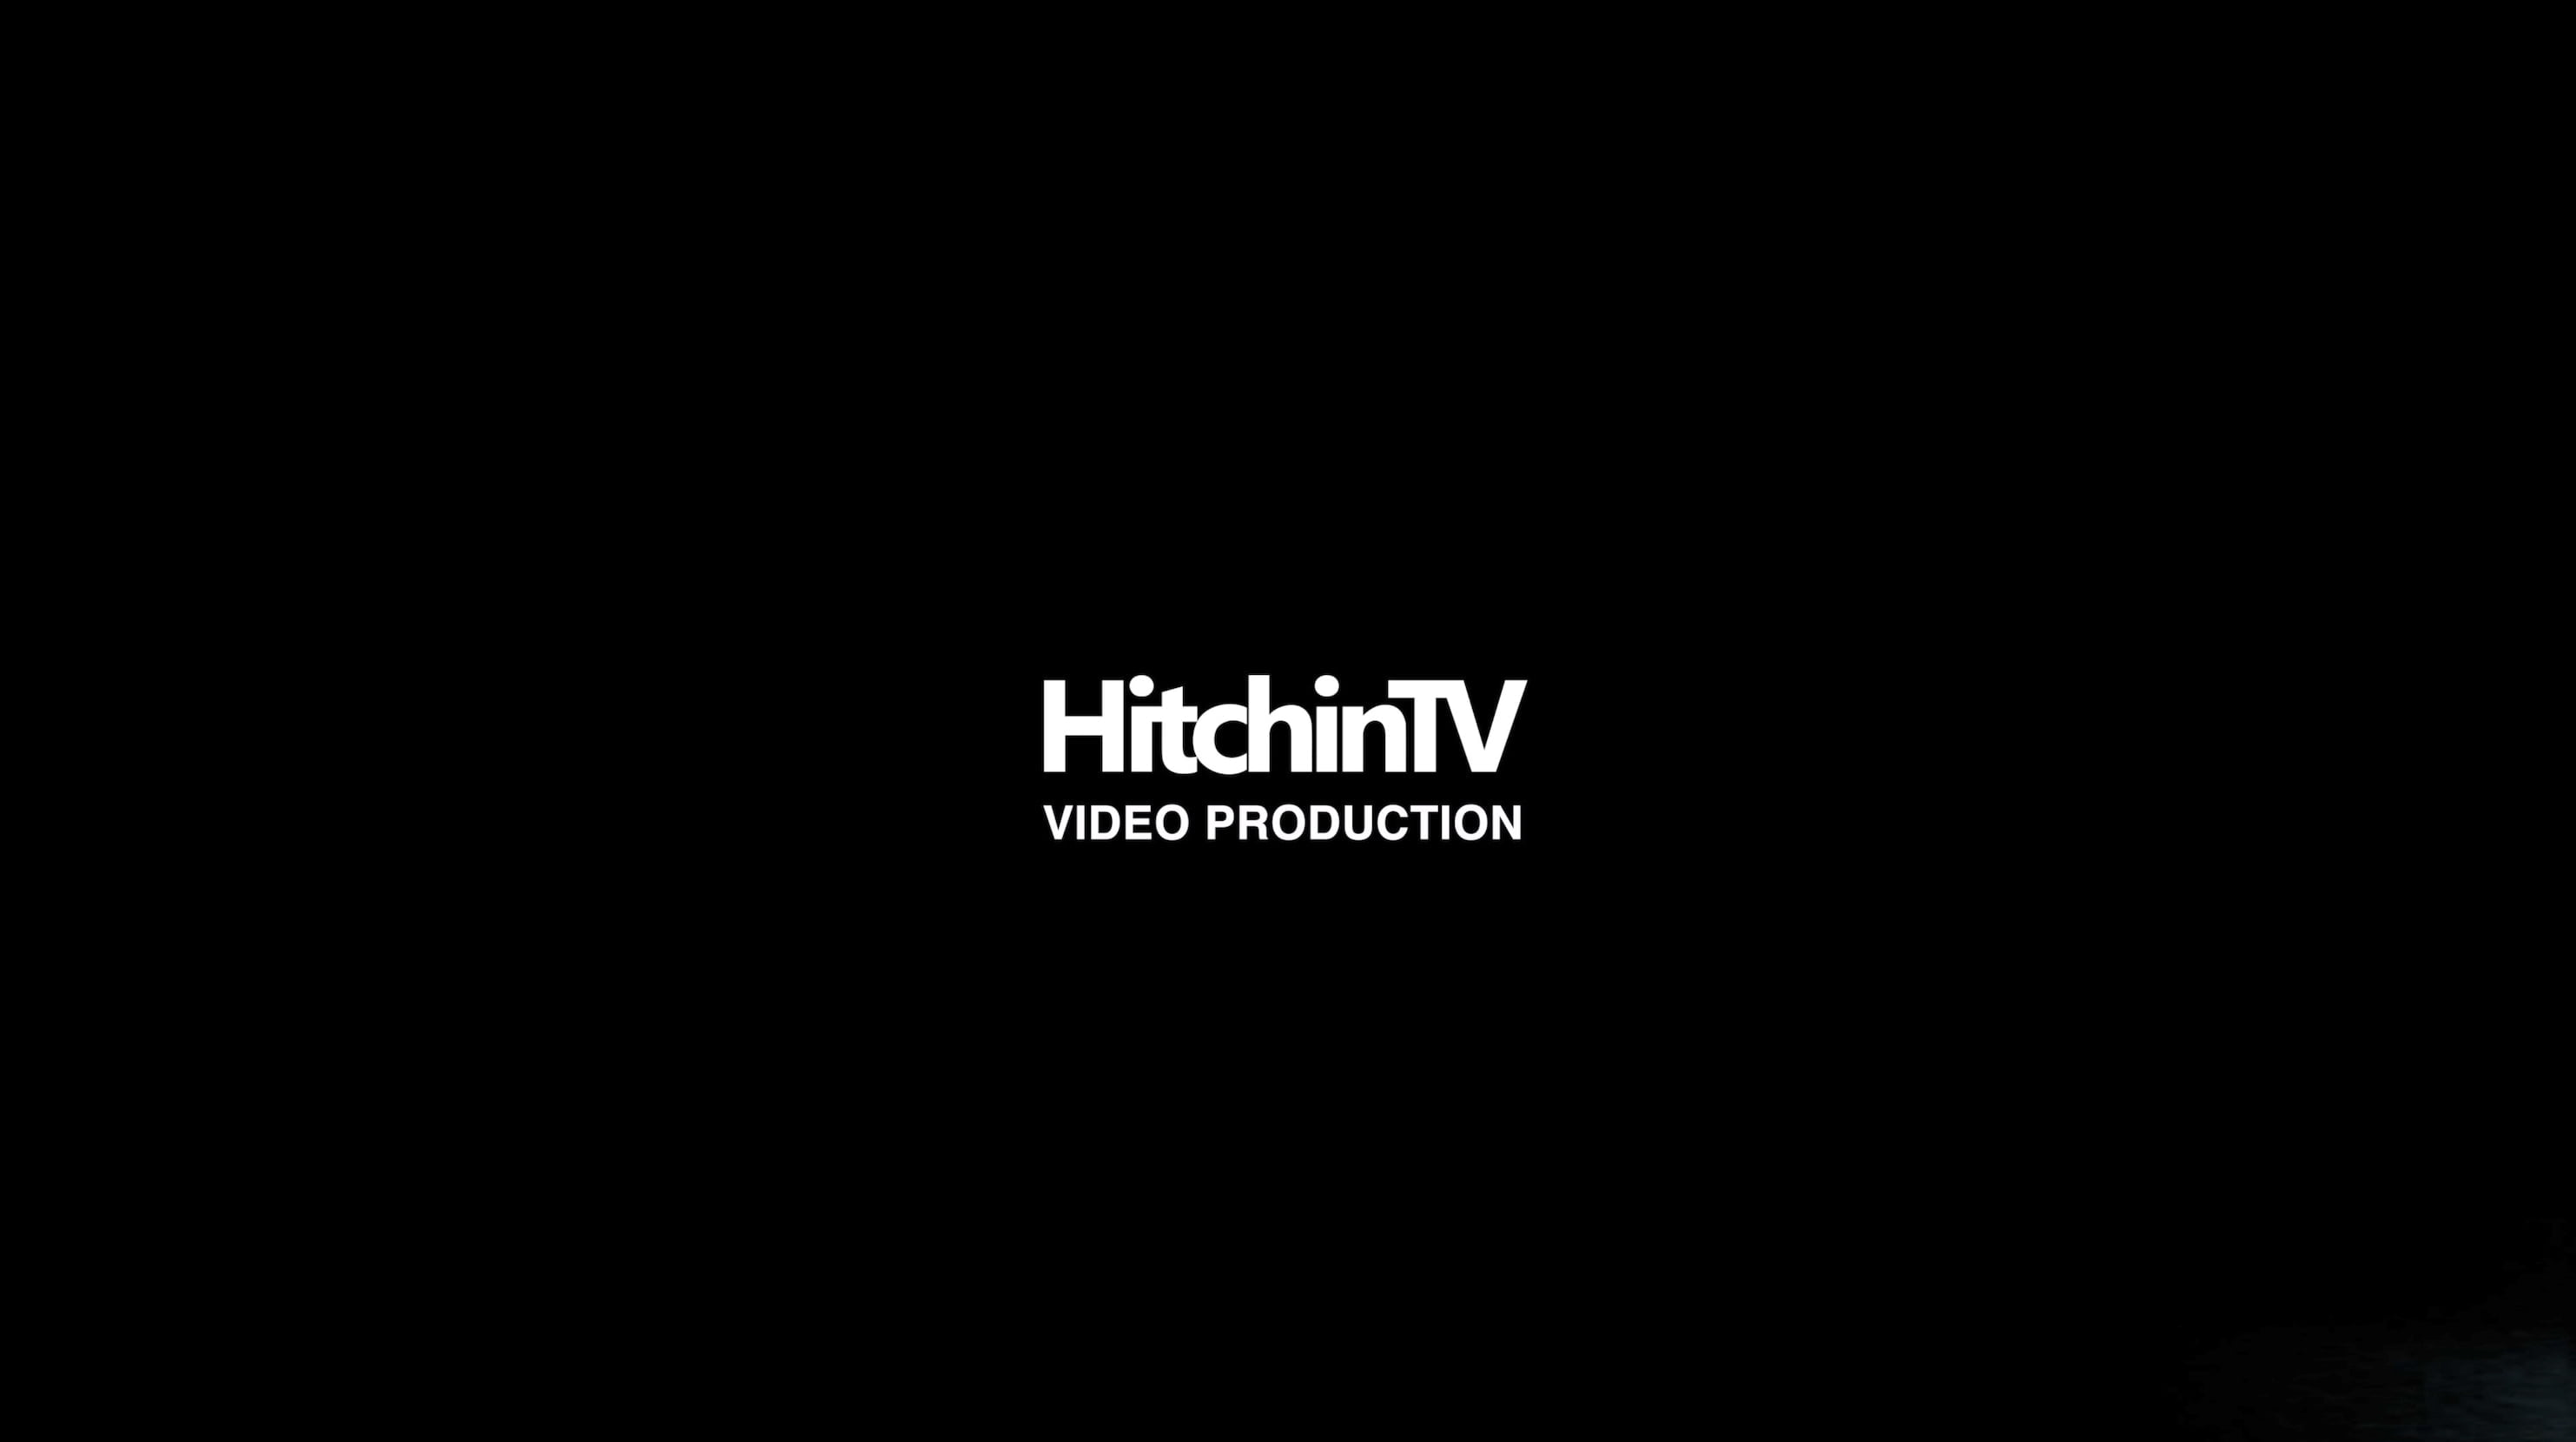 HitchinTV Video Production